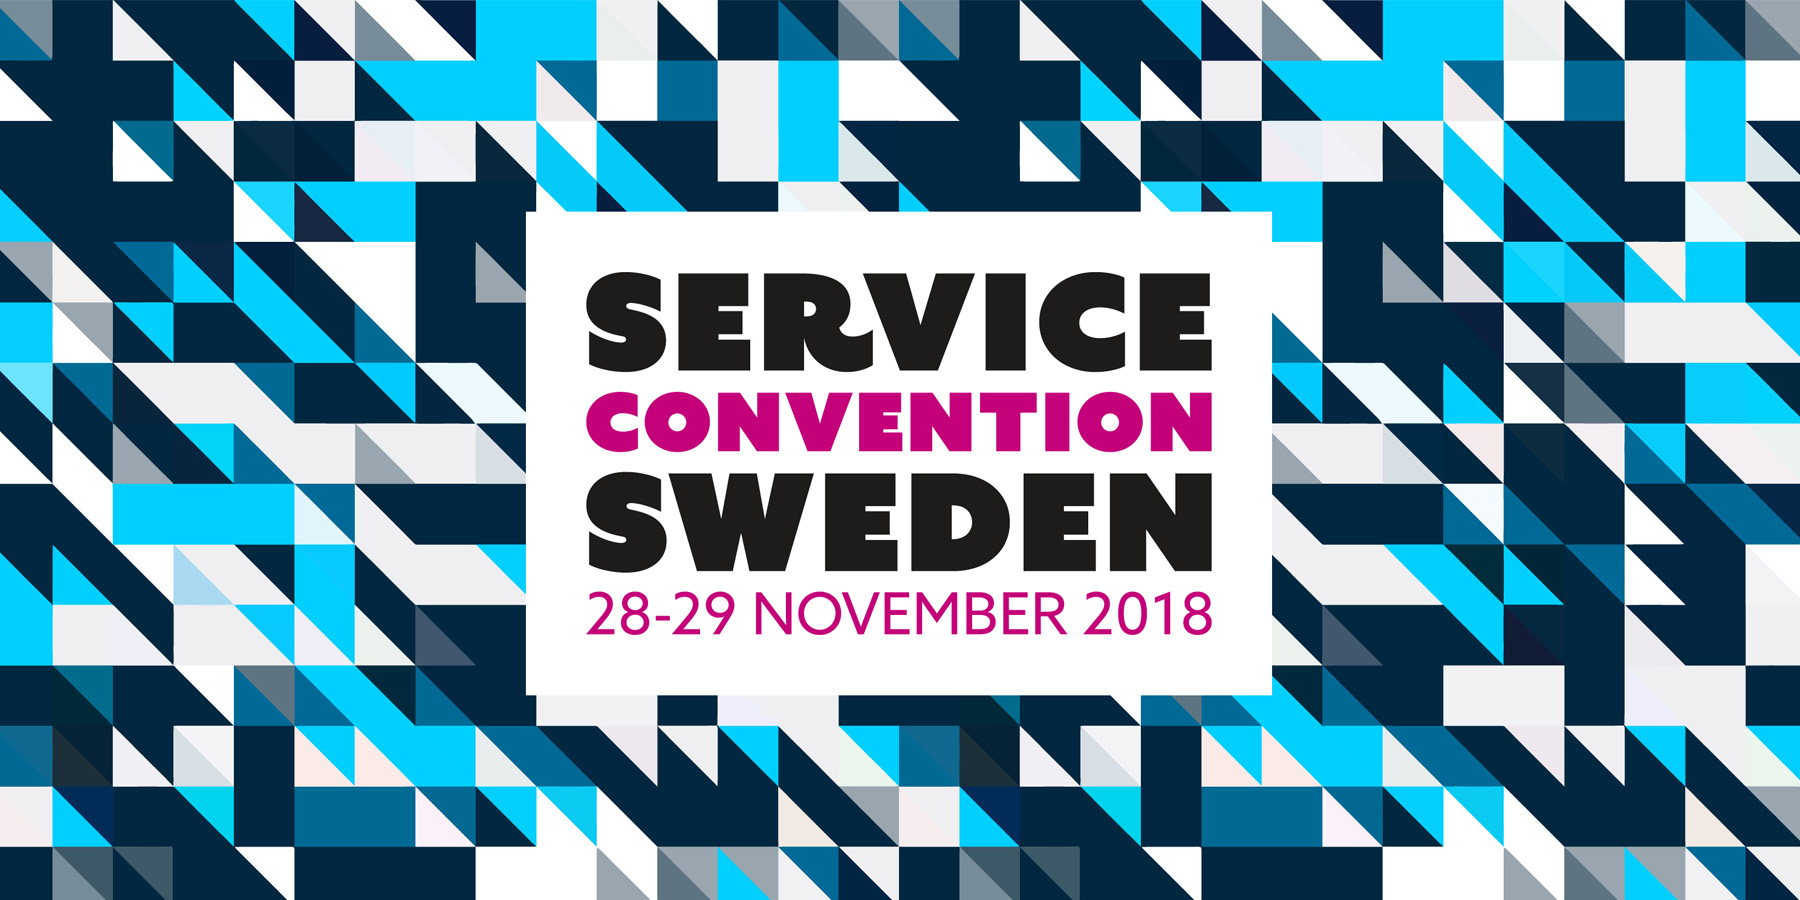 Service Convention Sweden